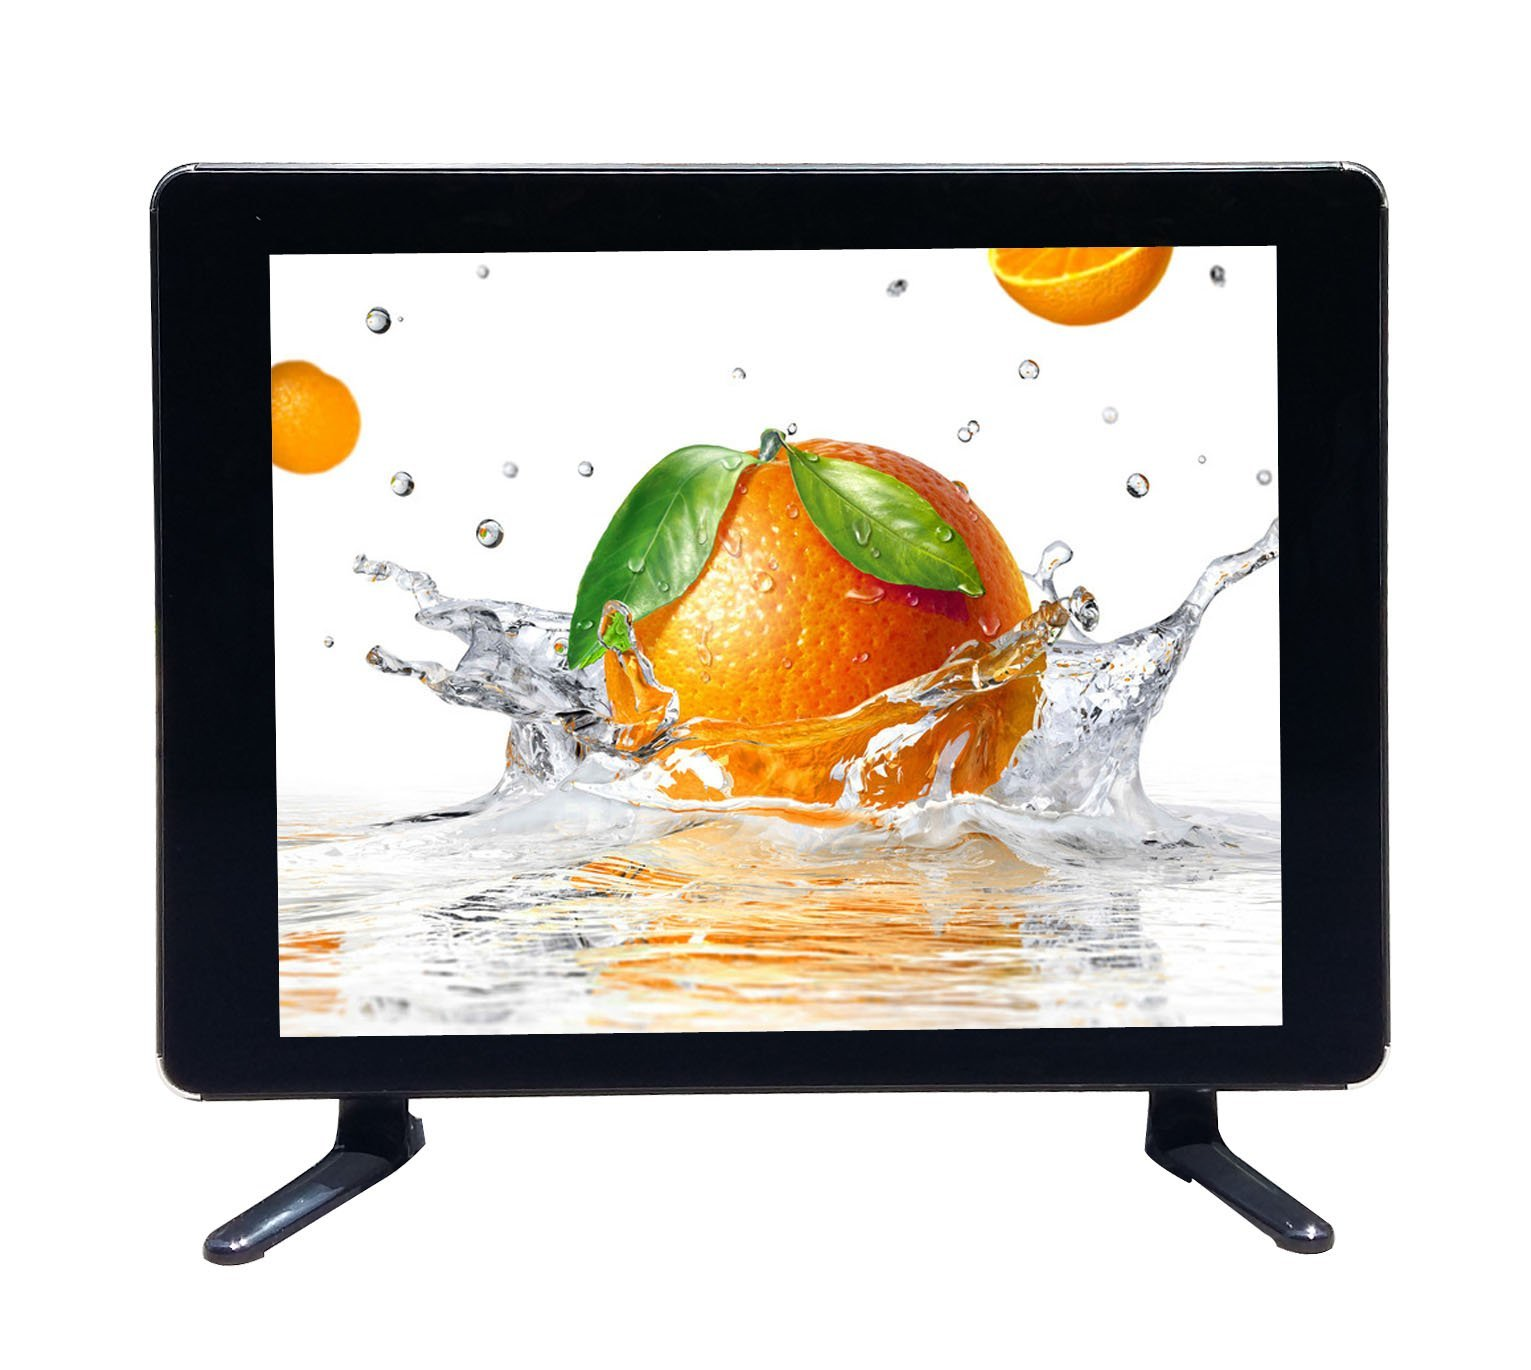 hd lcd 12v 17 inch flat screen tv Xinyao LCD Brand